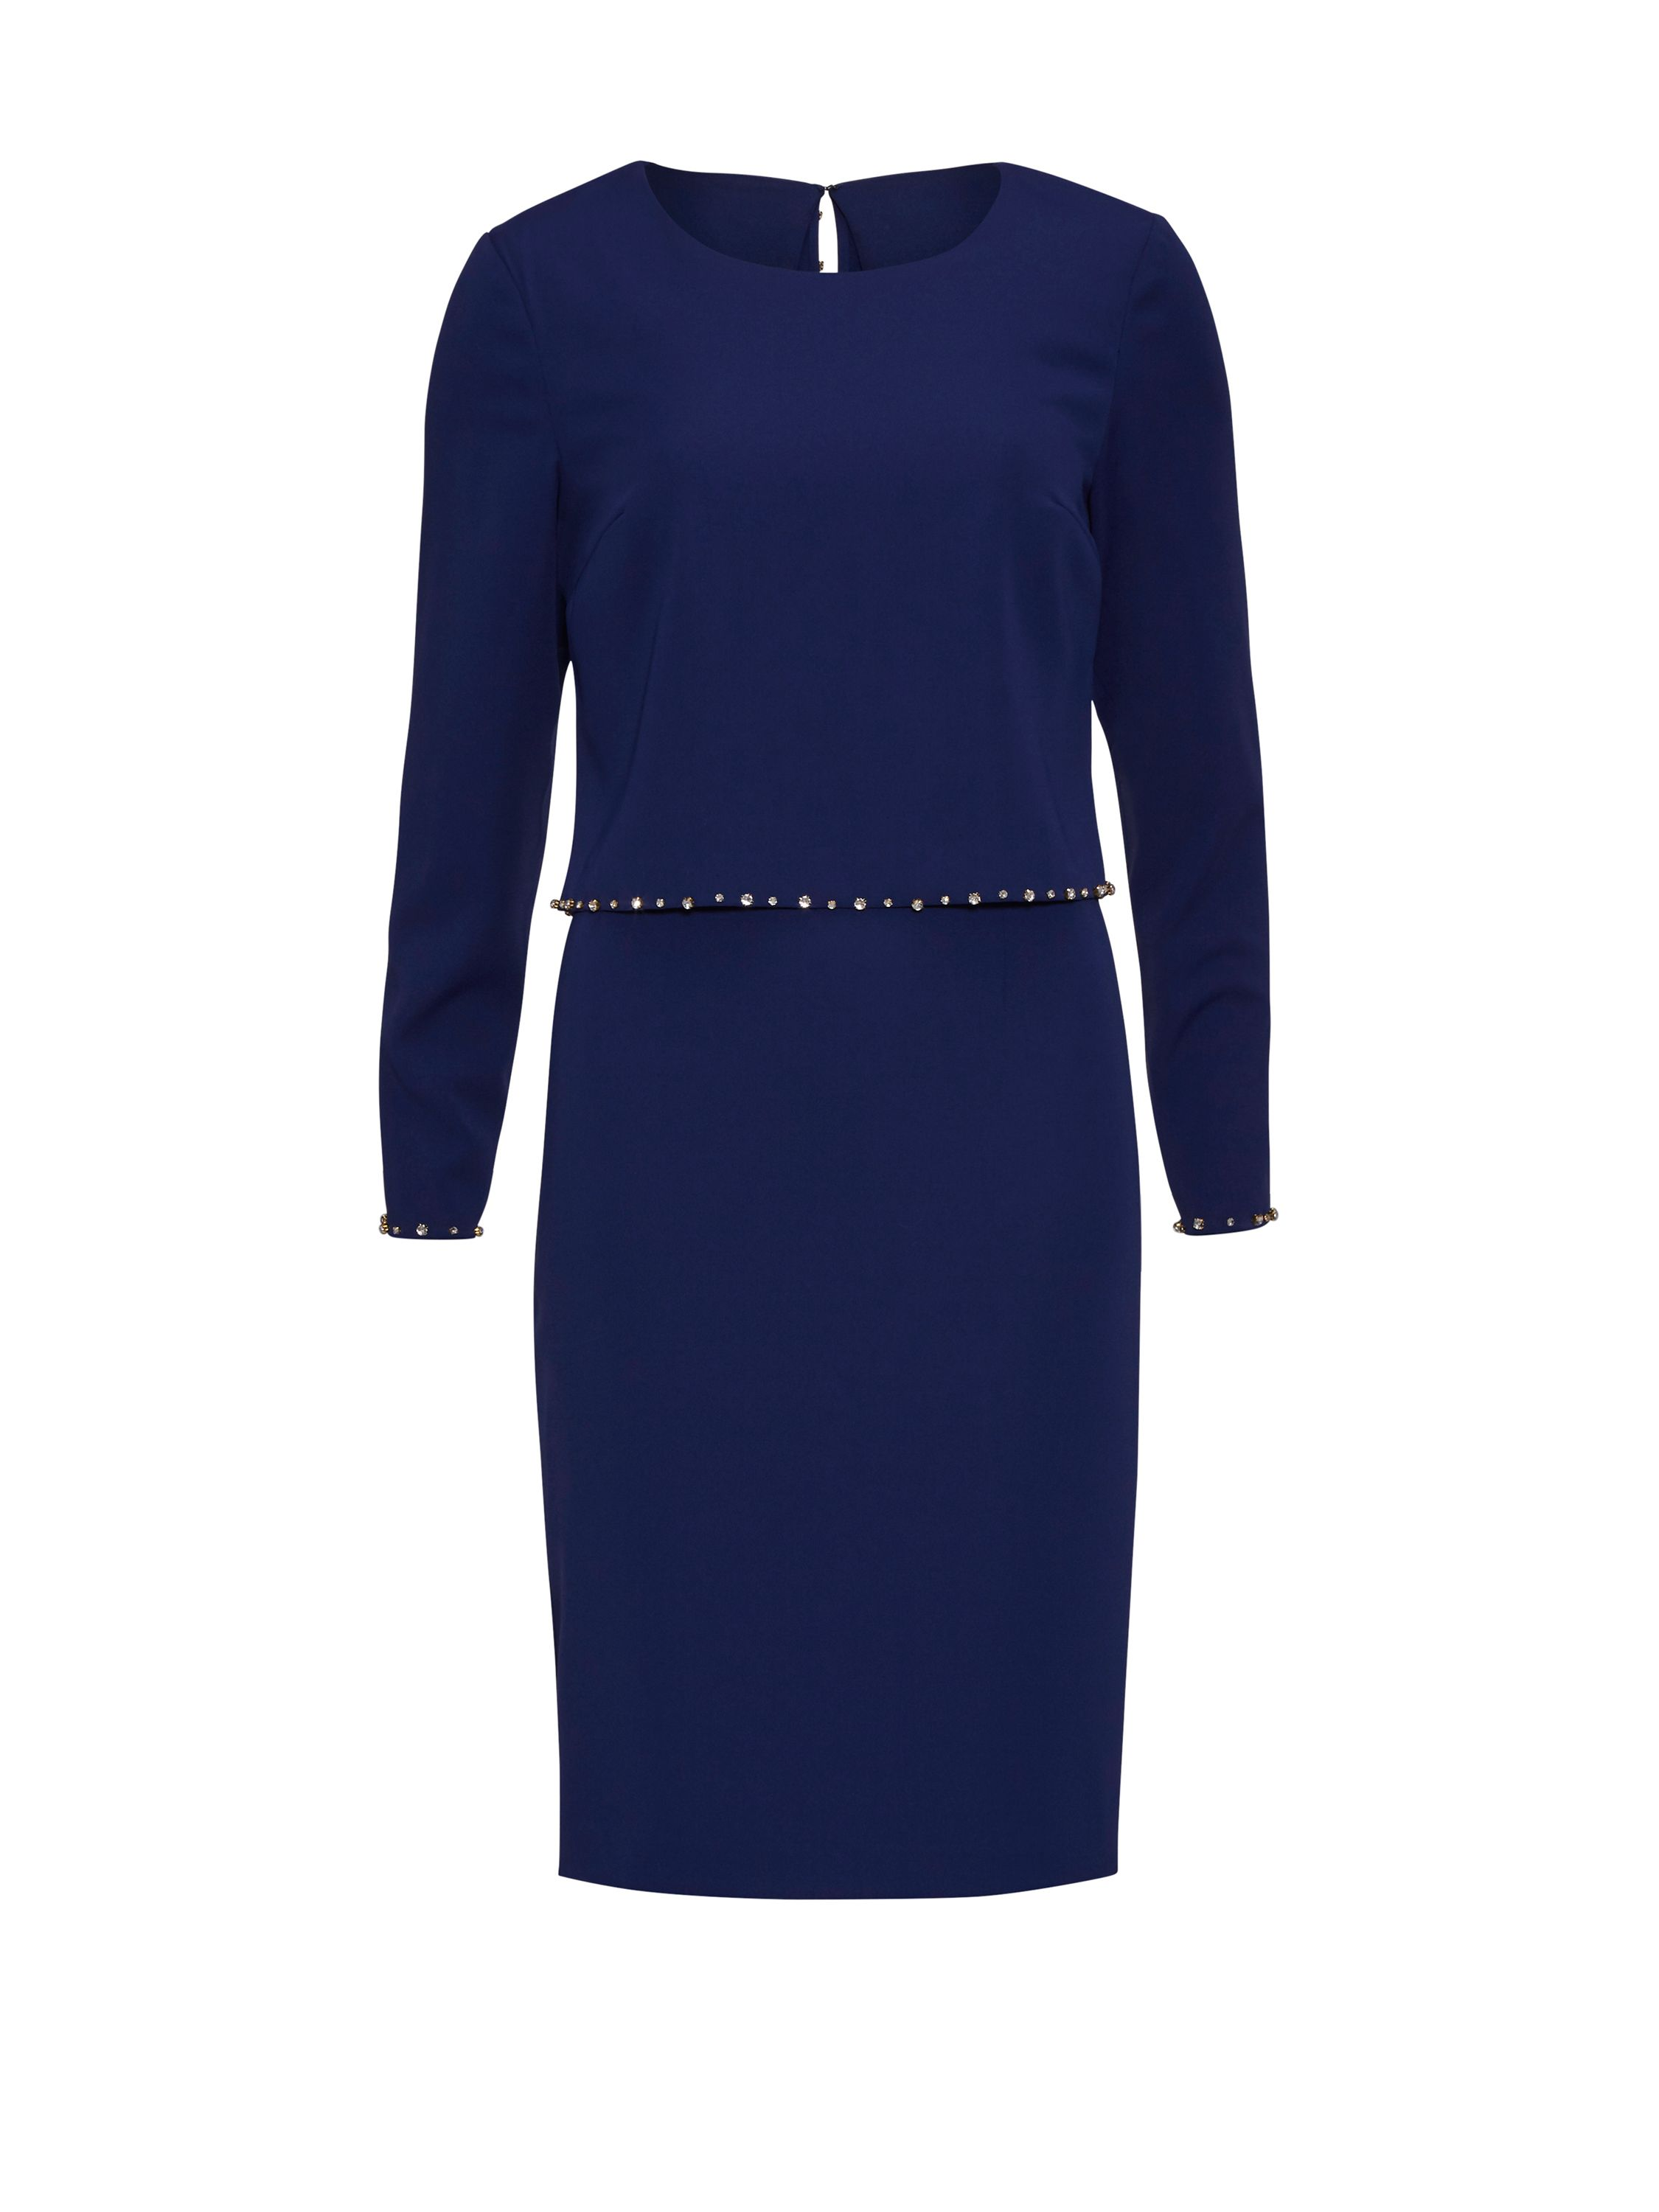 Gina Bacconi Crepe Dress And Beaded Edge Over Top, Blue